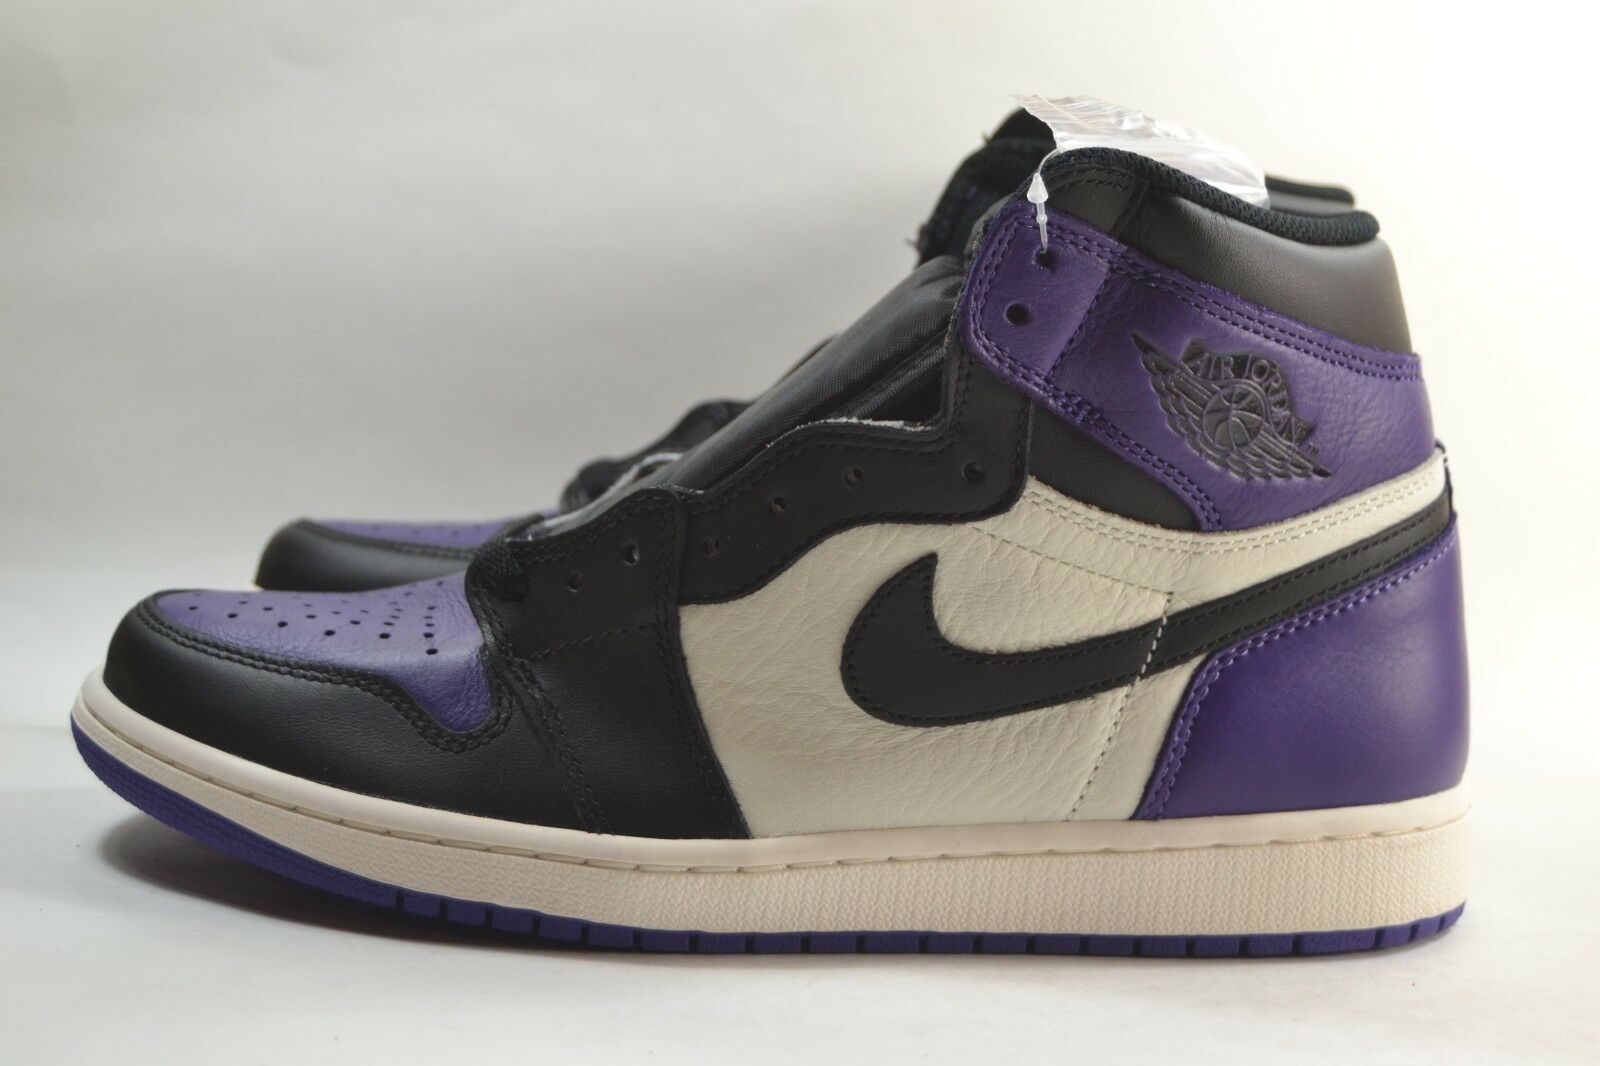 New Nike Air Jordan 1 Retro High OG Court Purple Black Sail 555088-501